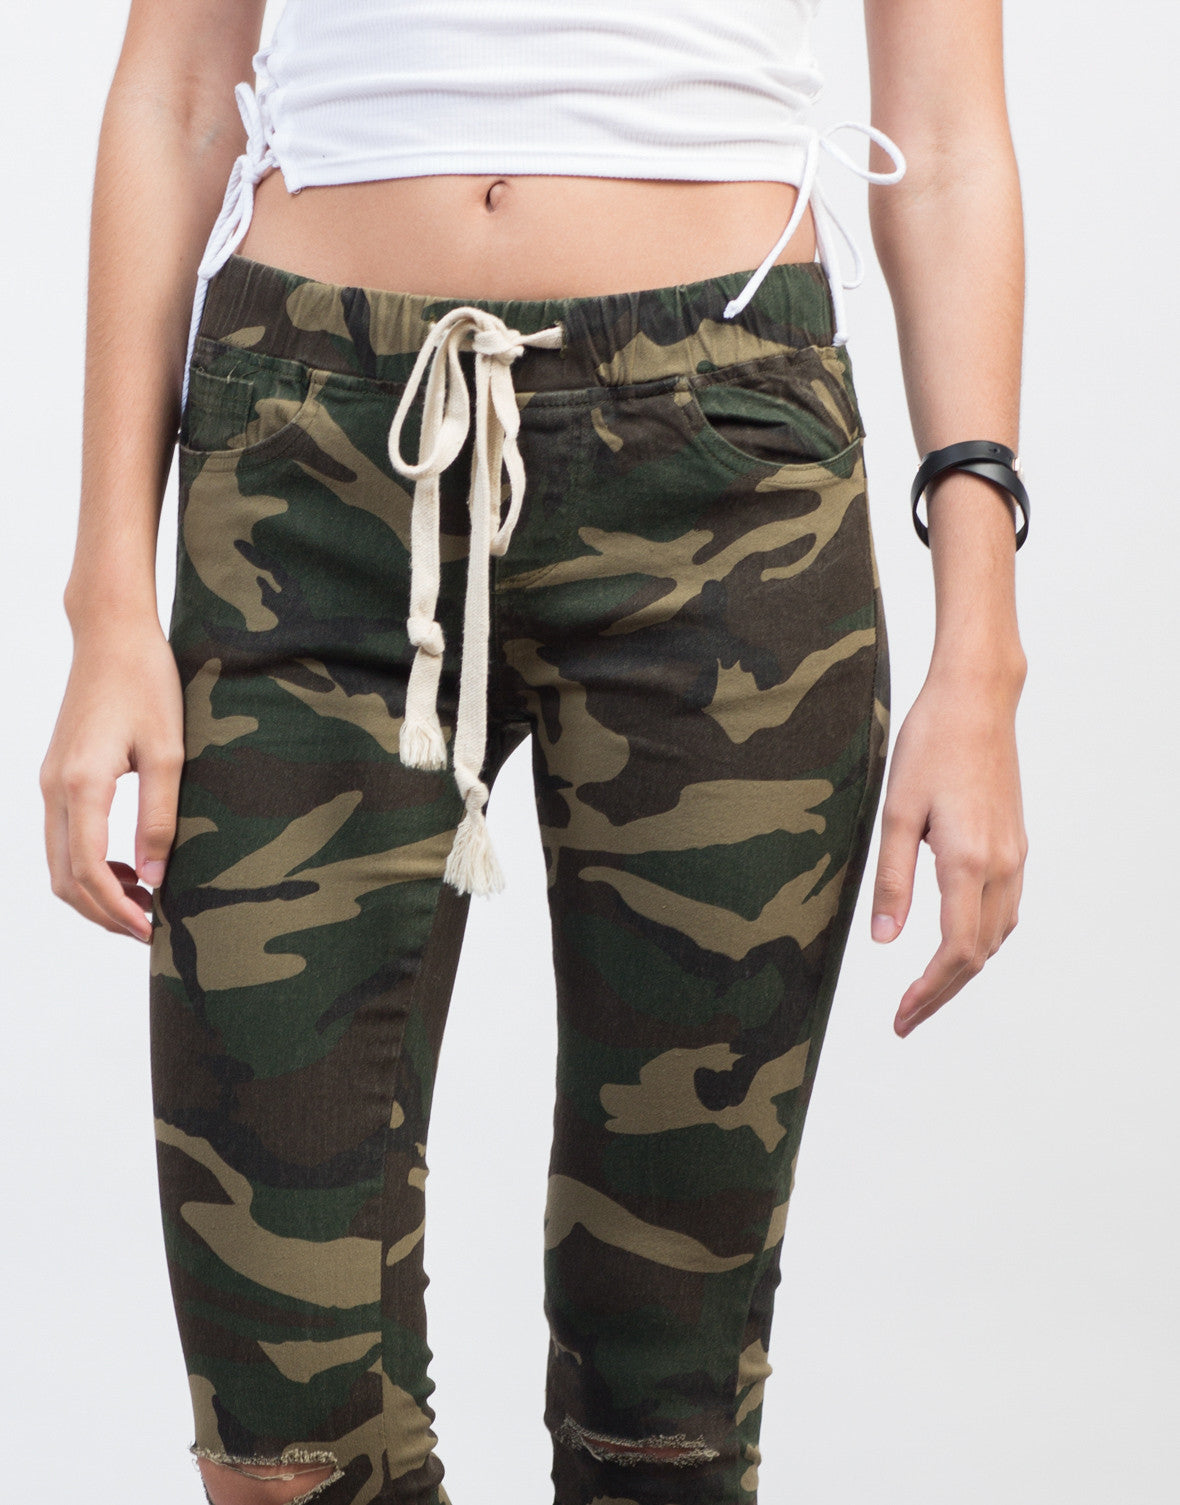 Detail of Ripped Knees Camo Pants